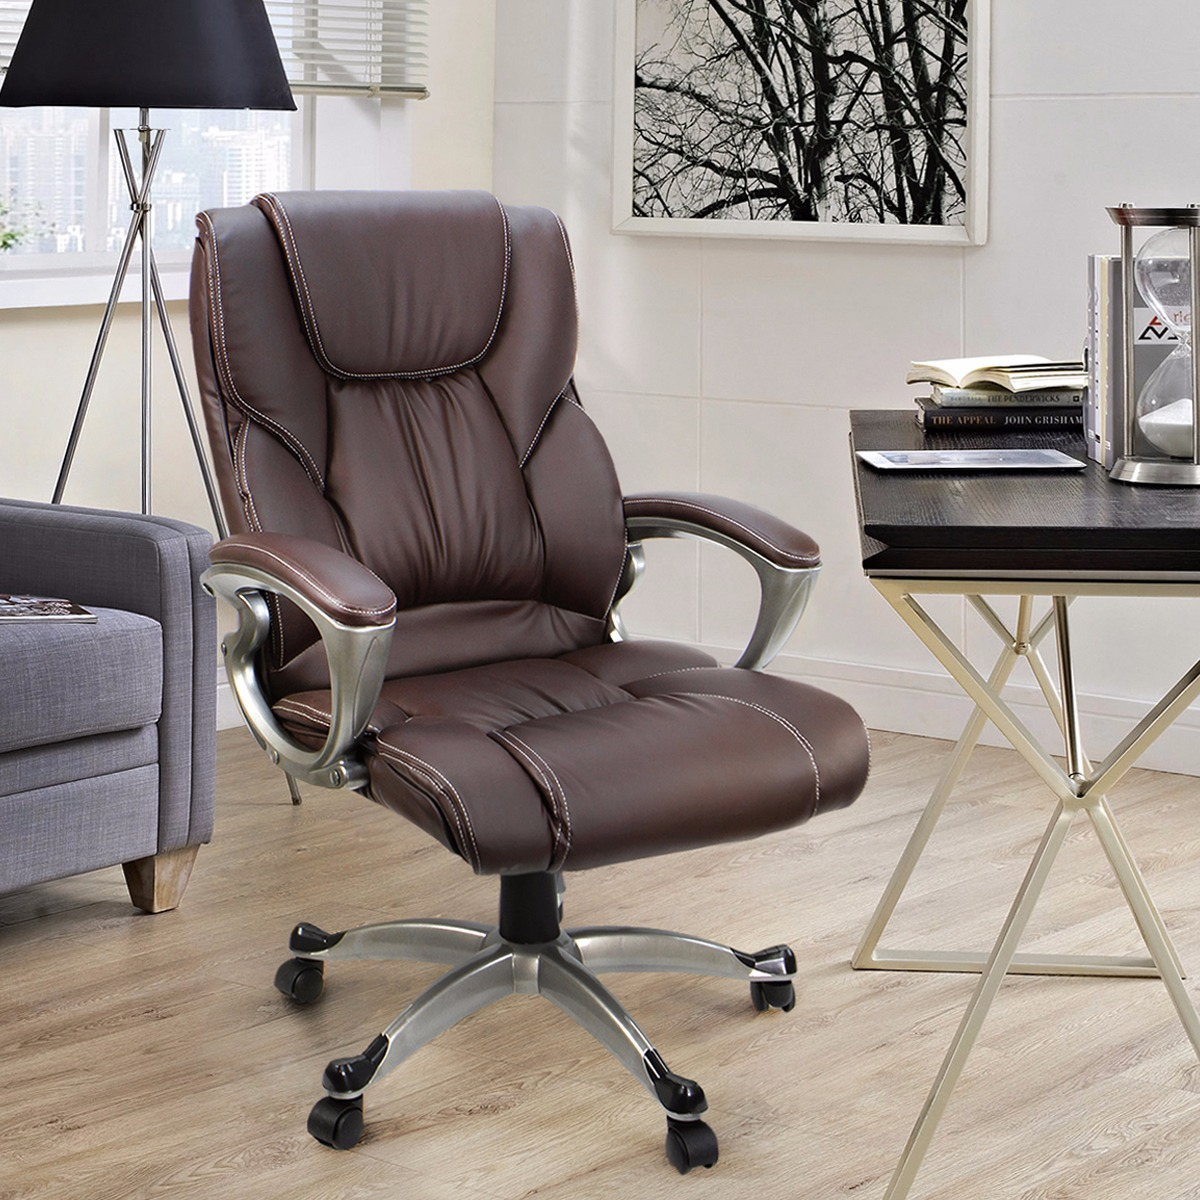 High Back Office Chair PU Leather Executive Ergonomic Swivel Lift, Brown